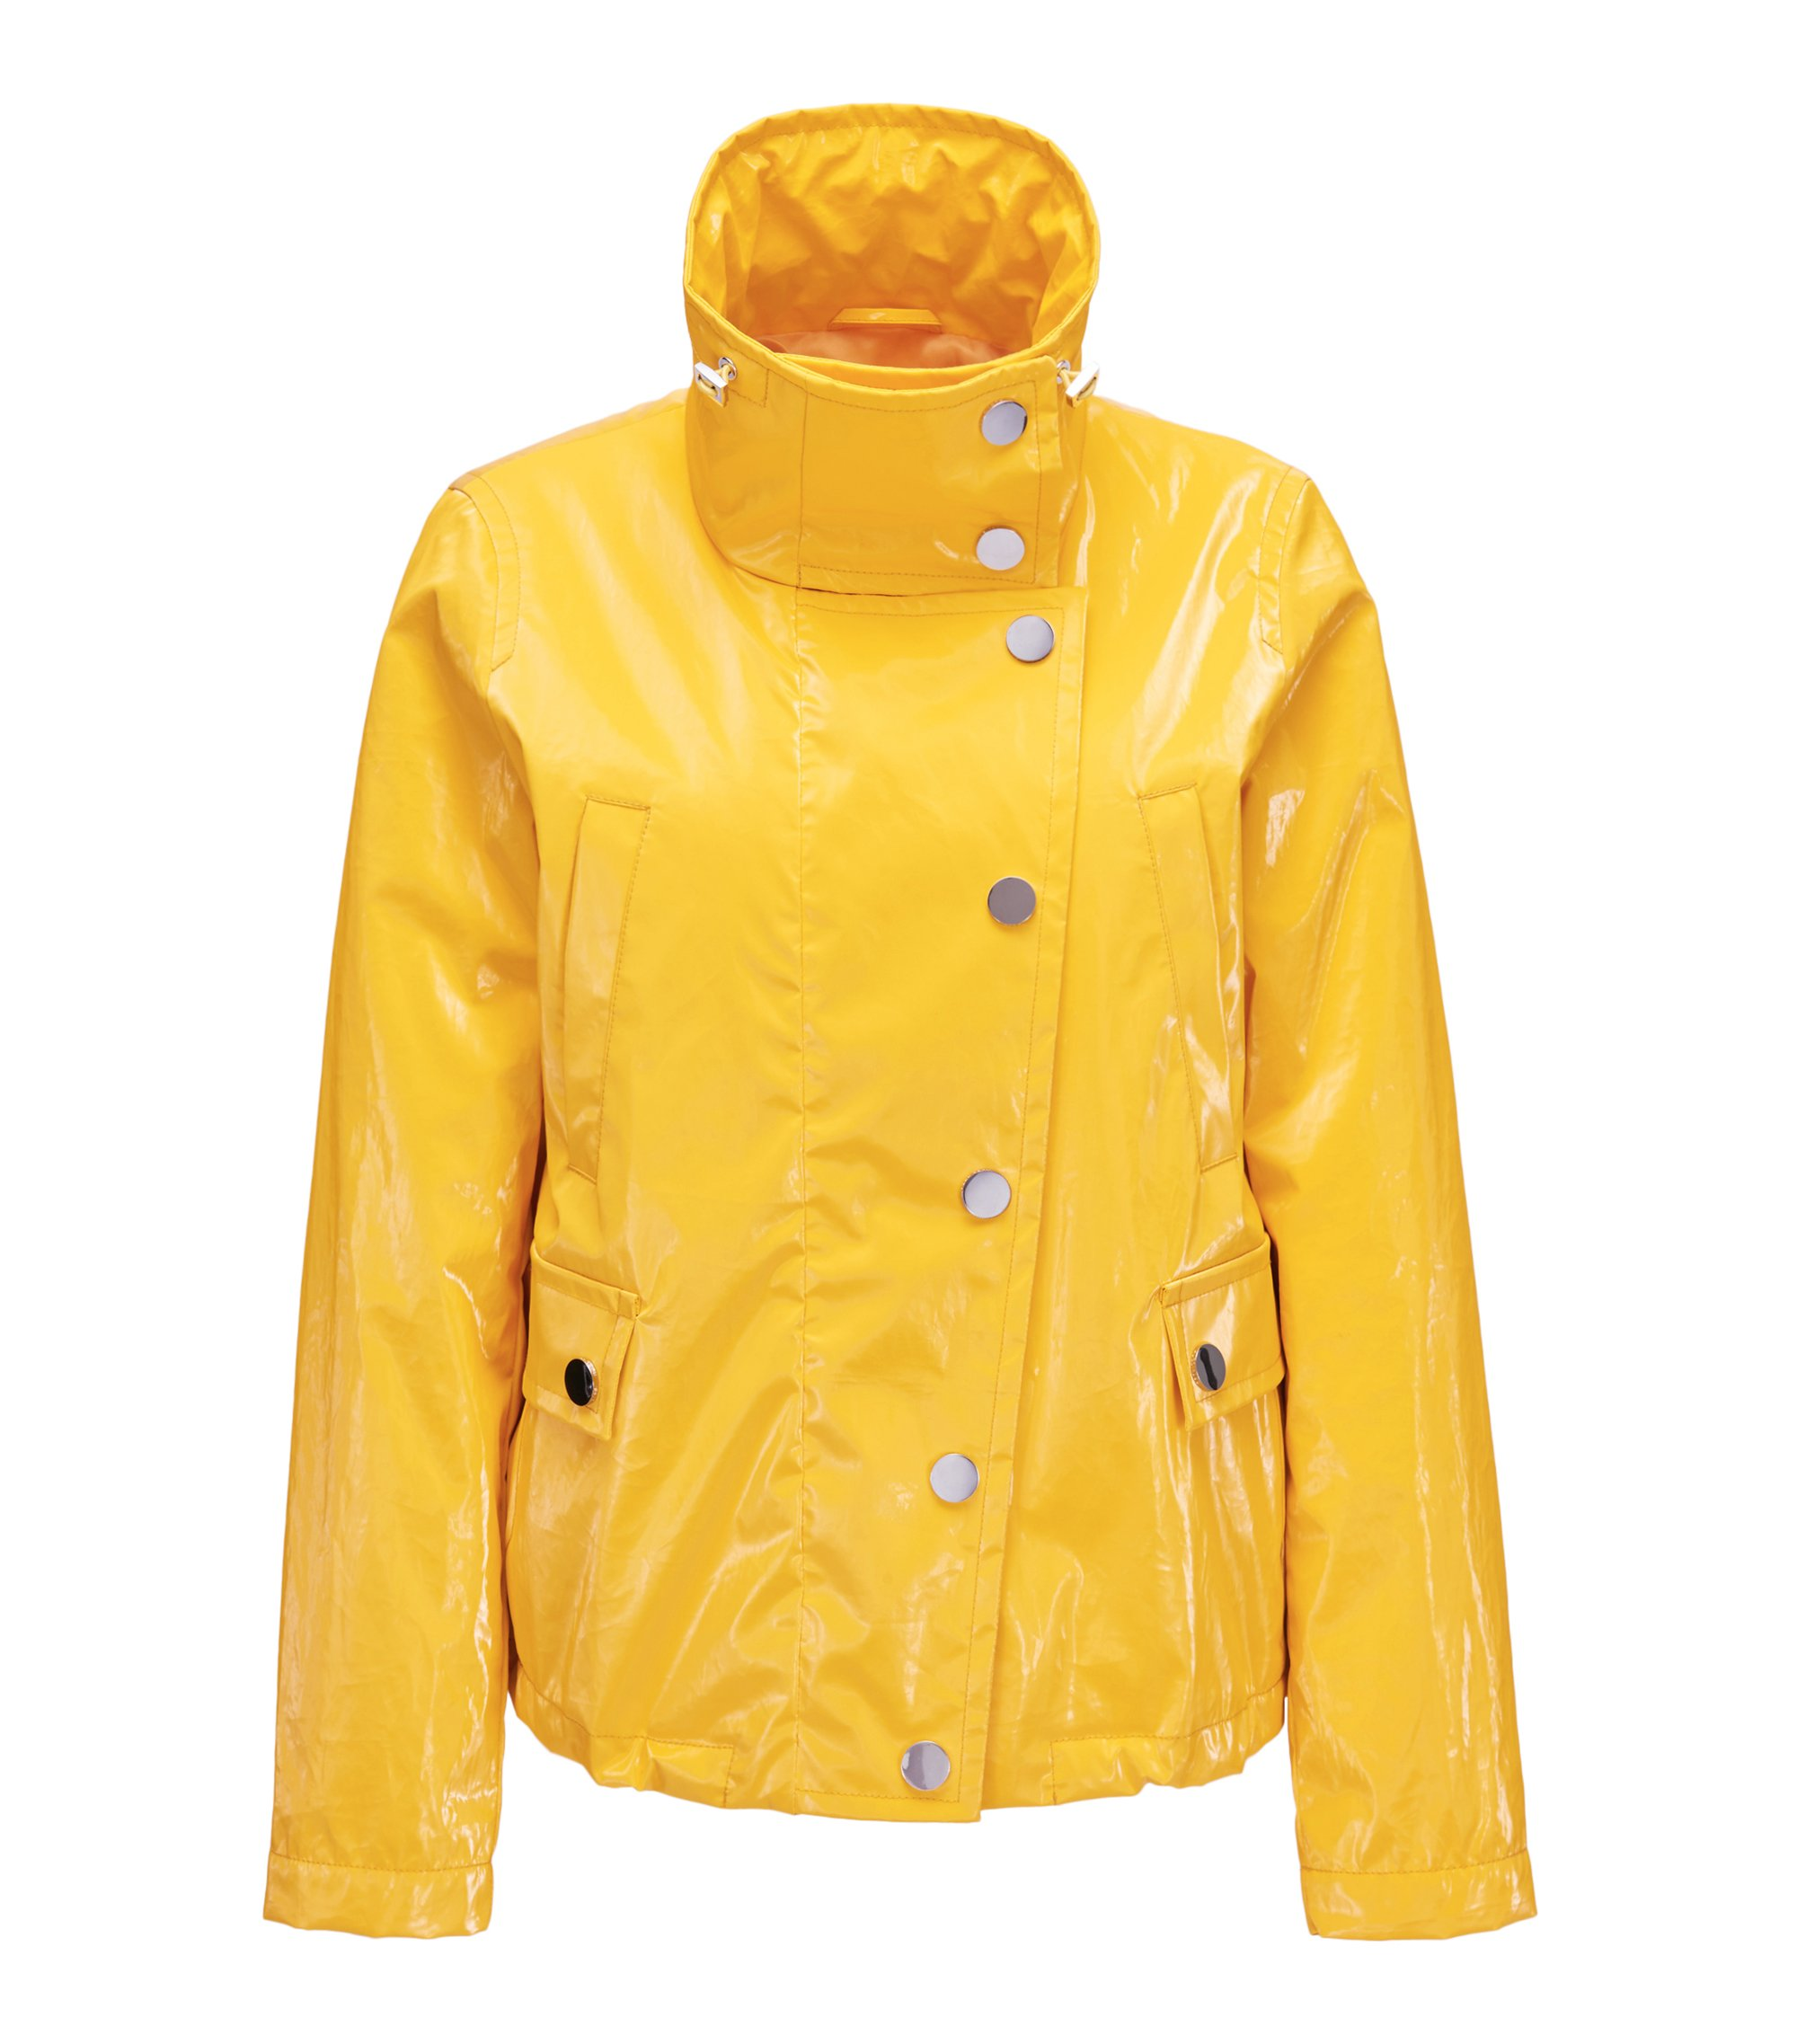 Waxed Cotton Rain Jacket | Pikachuto, Yellow